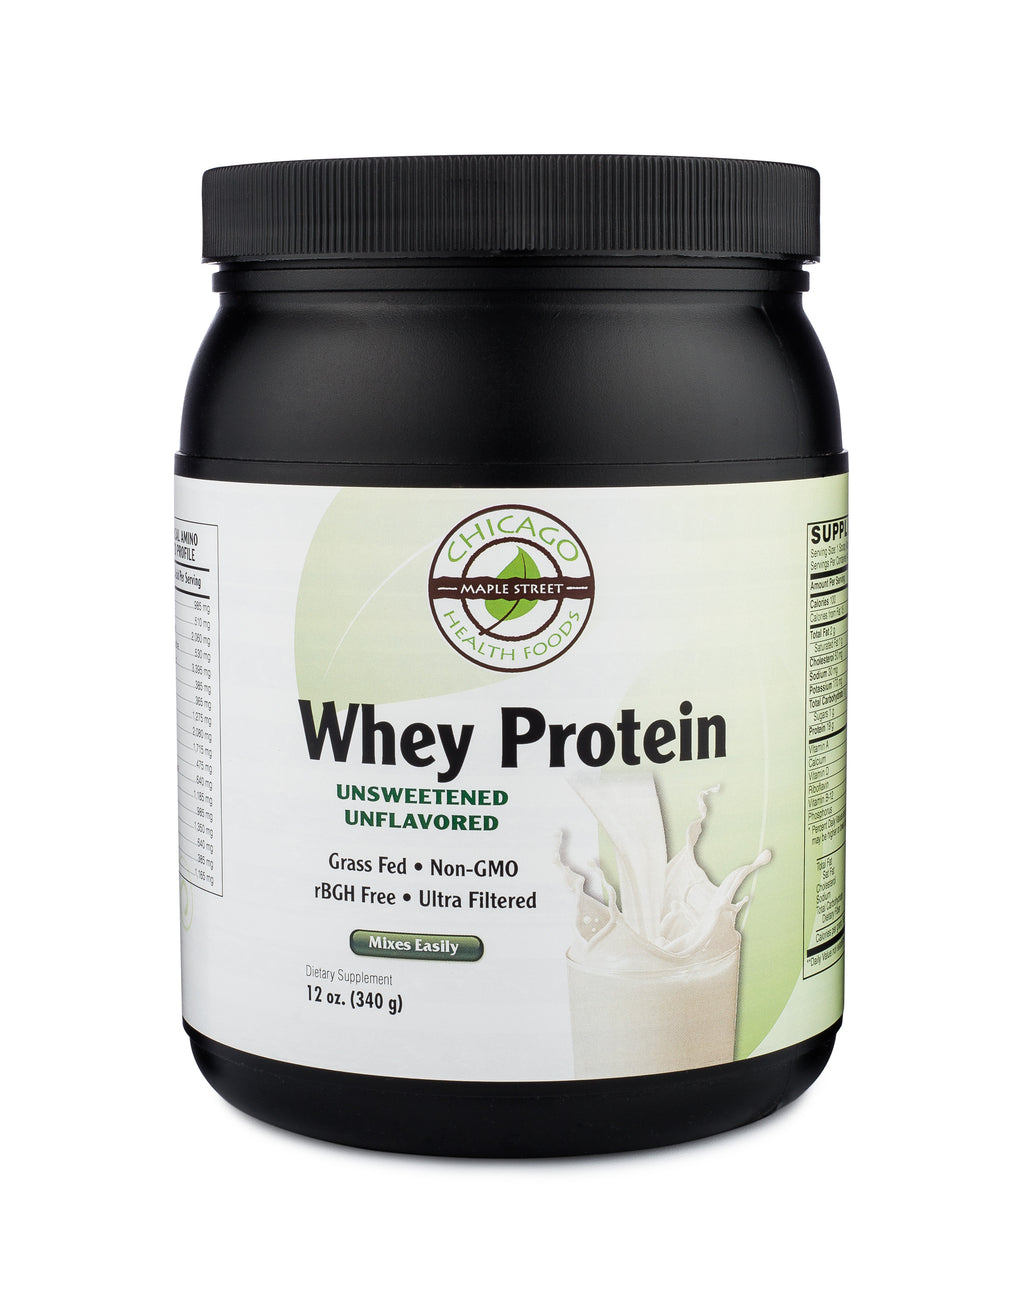 Whey protein unflavored-32oz-supplement-Chicago-Health-Foods